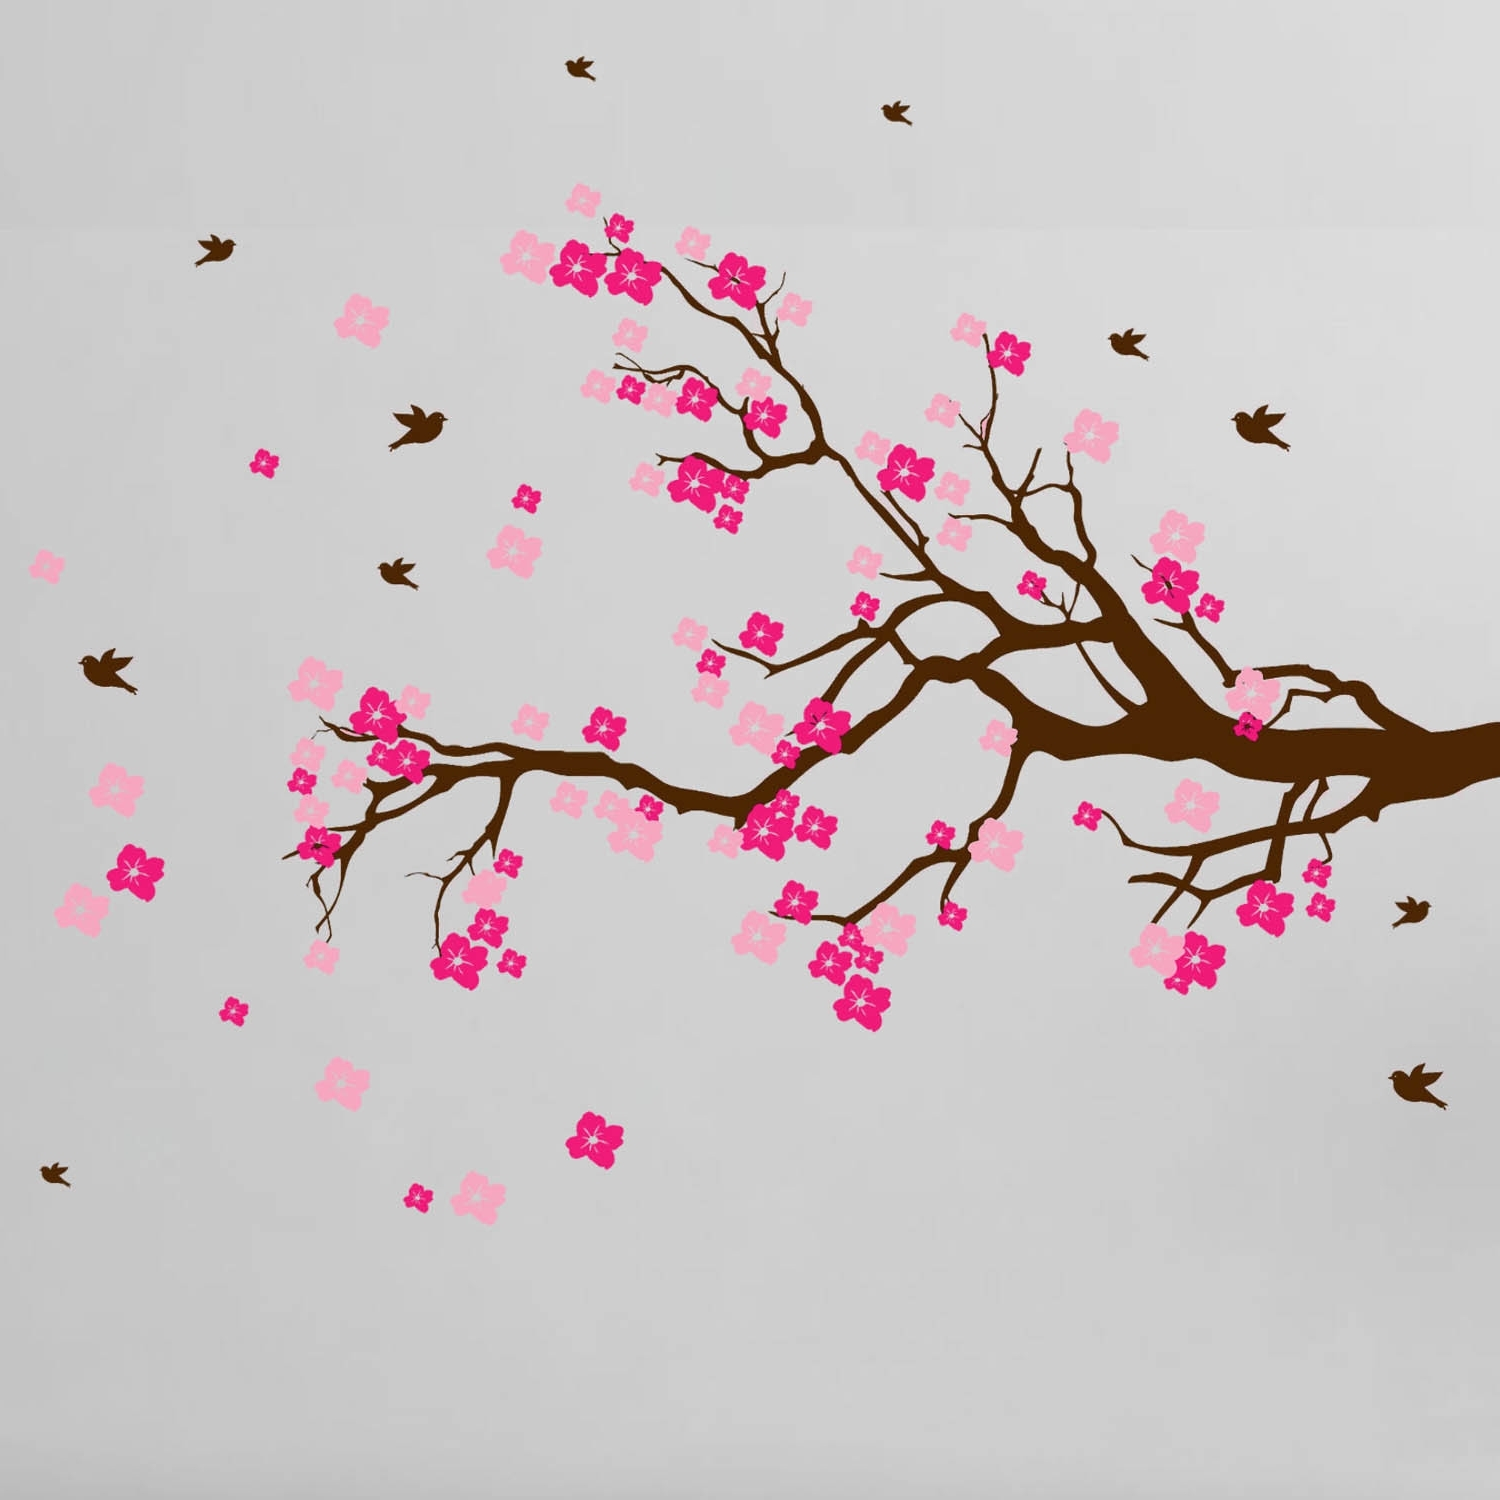 Best And Newest Shop Cherry Blossom Branch With Birds Vinyl Wall Art Decal – Free With Regard To Cherry Blossom Wall Art (View 1 of 20)